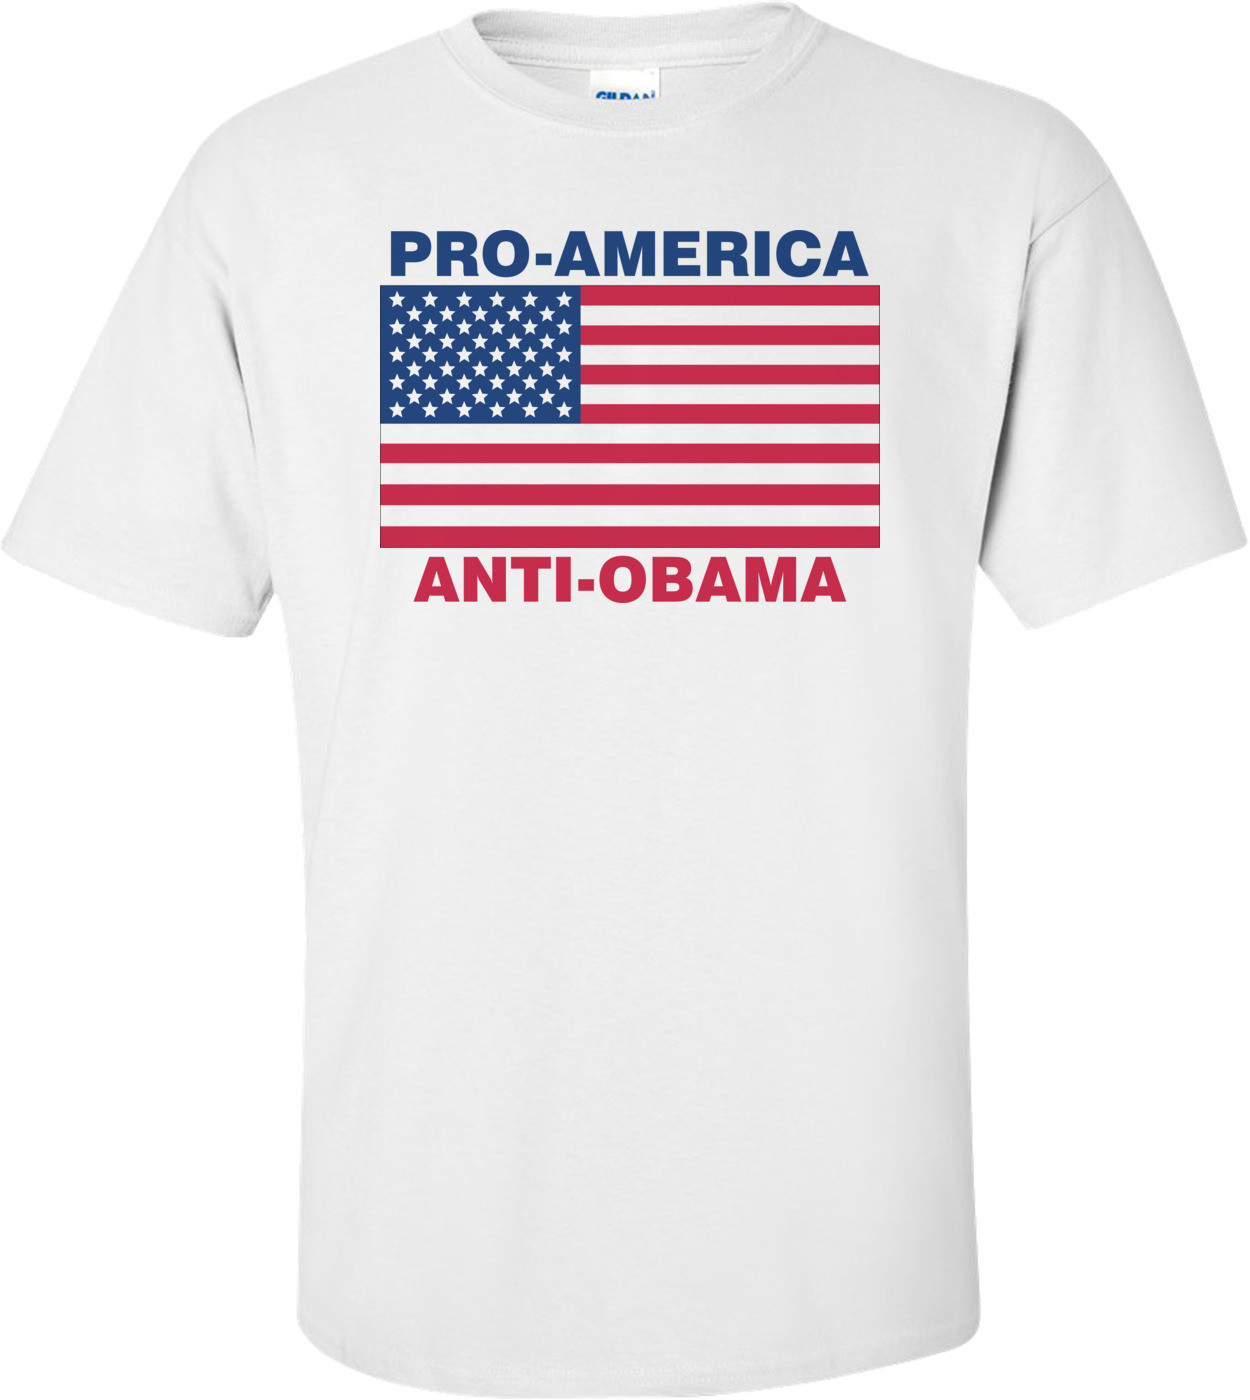 Pro America Anti Obama T-shirt